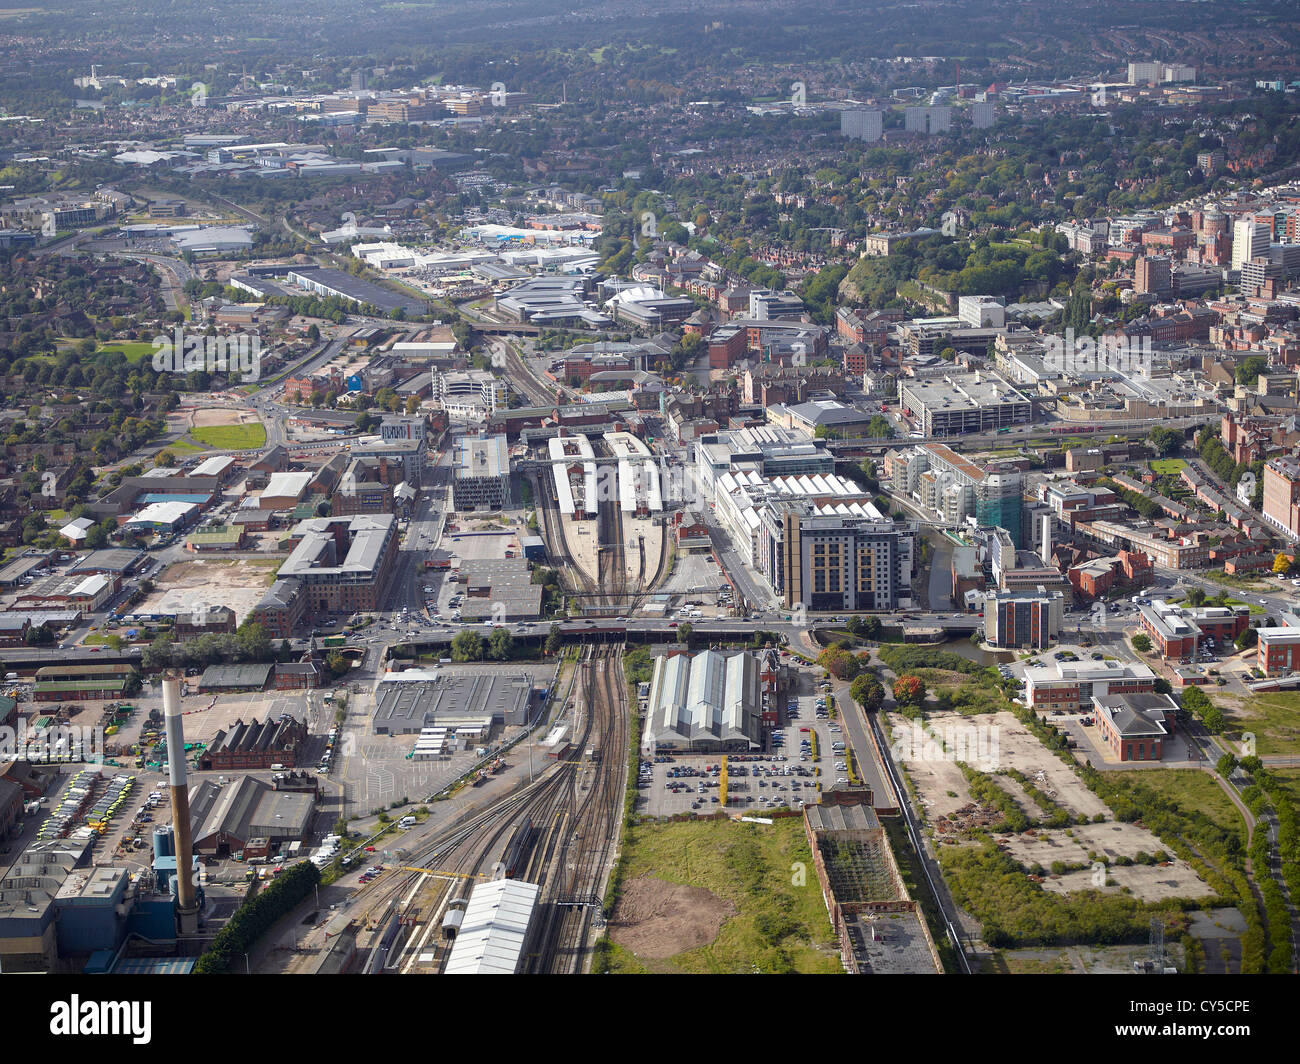 Aerial view of Nottingham City Centre, East Midlands, England, UK, showing the railway station - Stock Image